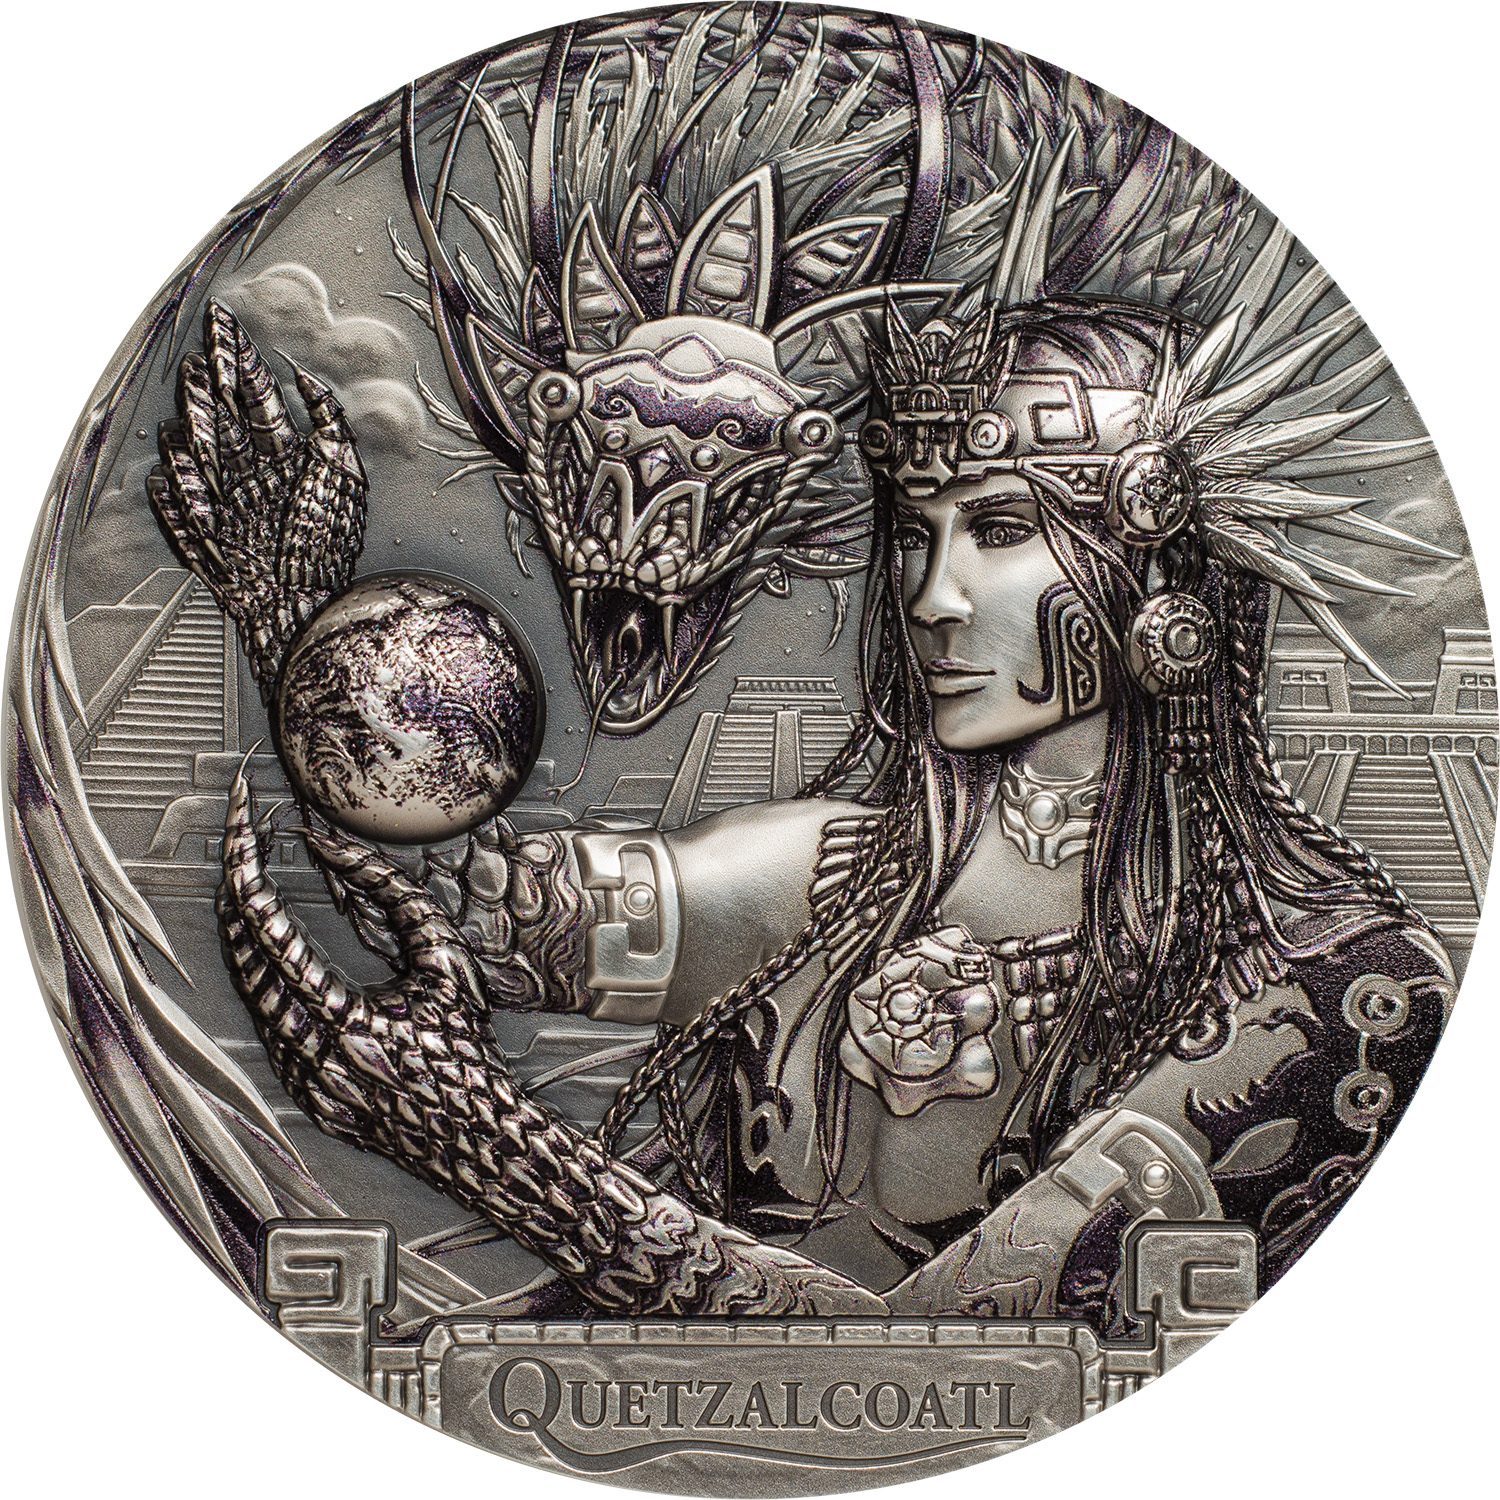 Cook Islands - 2017 - Gods Of The World QUETZALCOATL Aztec Feathered Serpent